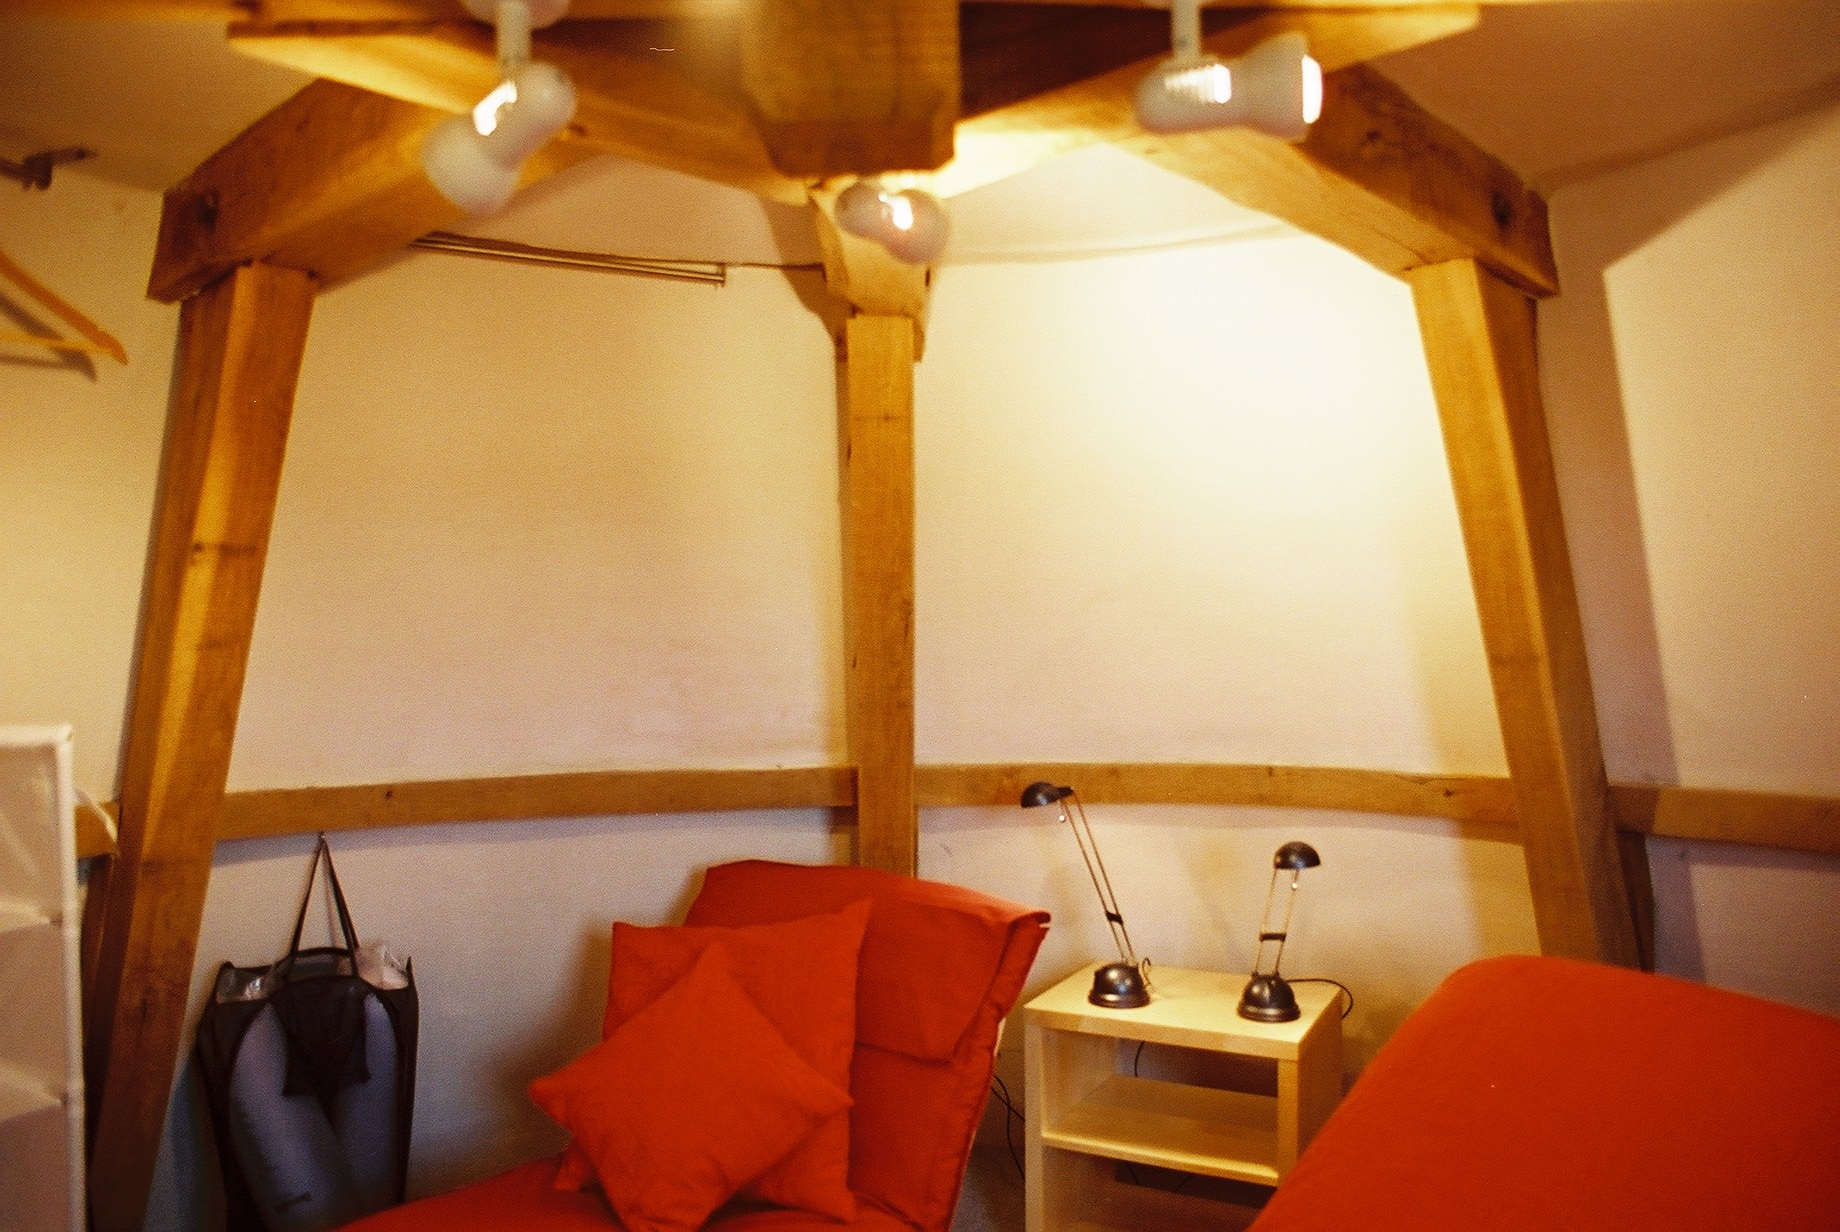 Attic / Upper Bedroom - This can be used either as a second bedroom with a futon seat/bed, or it can be used as a small sitting room with TV/DVD player in case of wet weather. It also makes an excellent writer's retreat and many books have been written in this room.